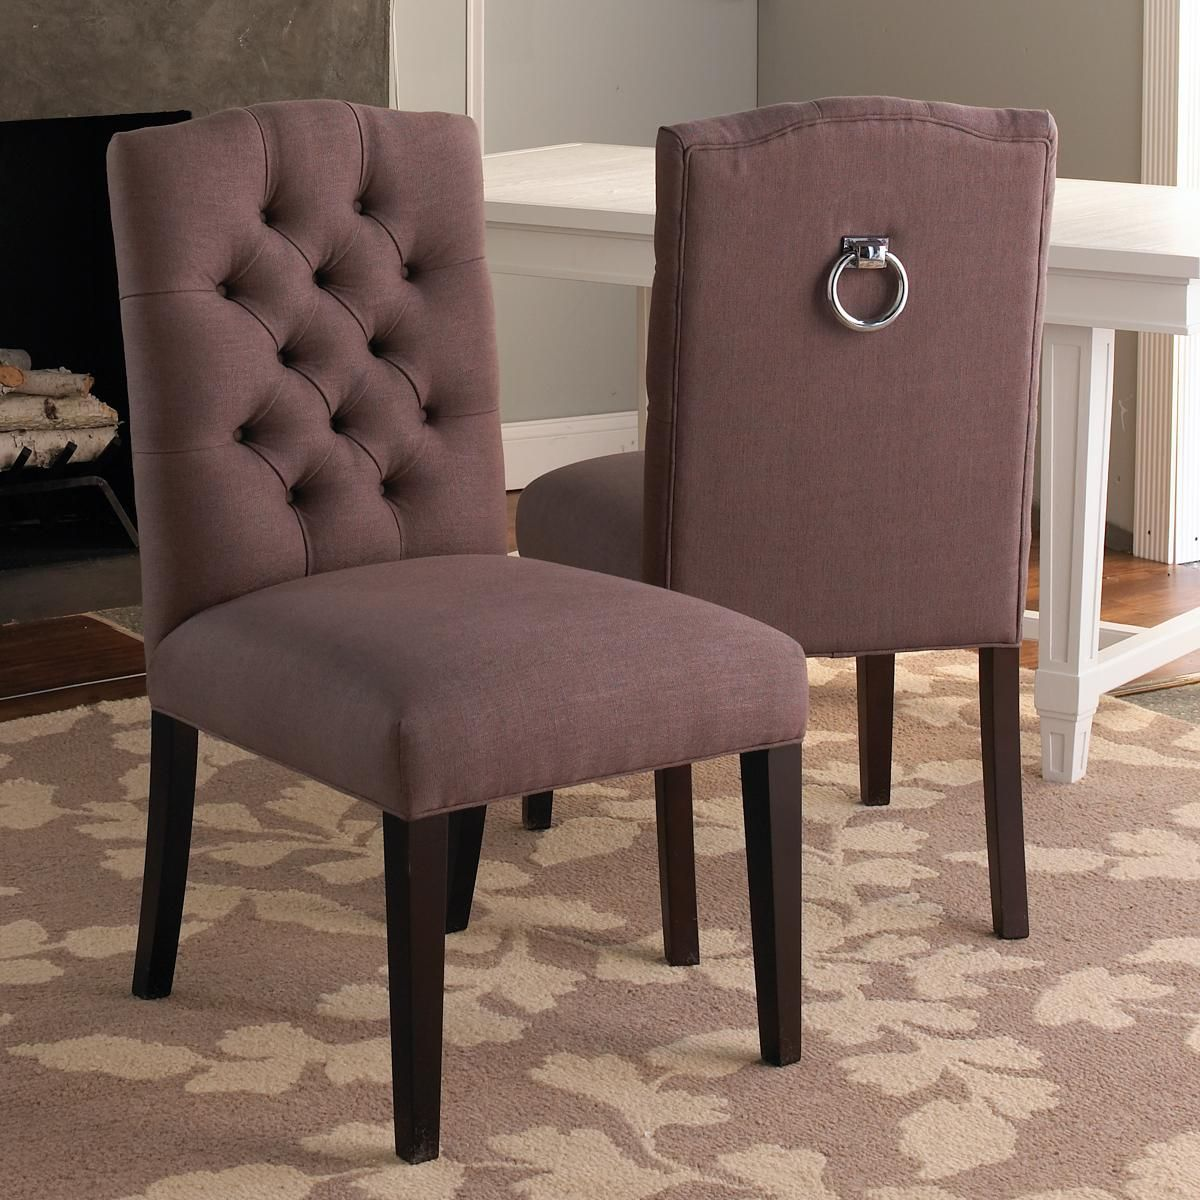 Tufted Back Dining Chair W/Silver Ring $399